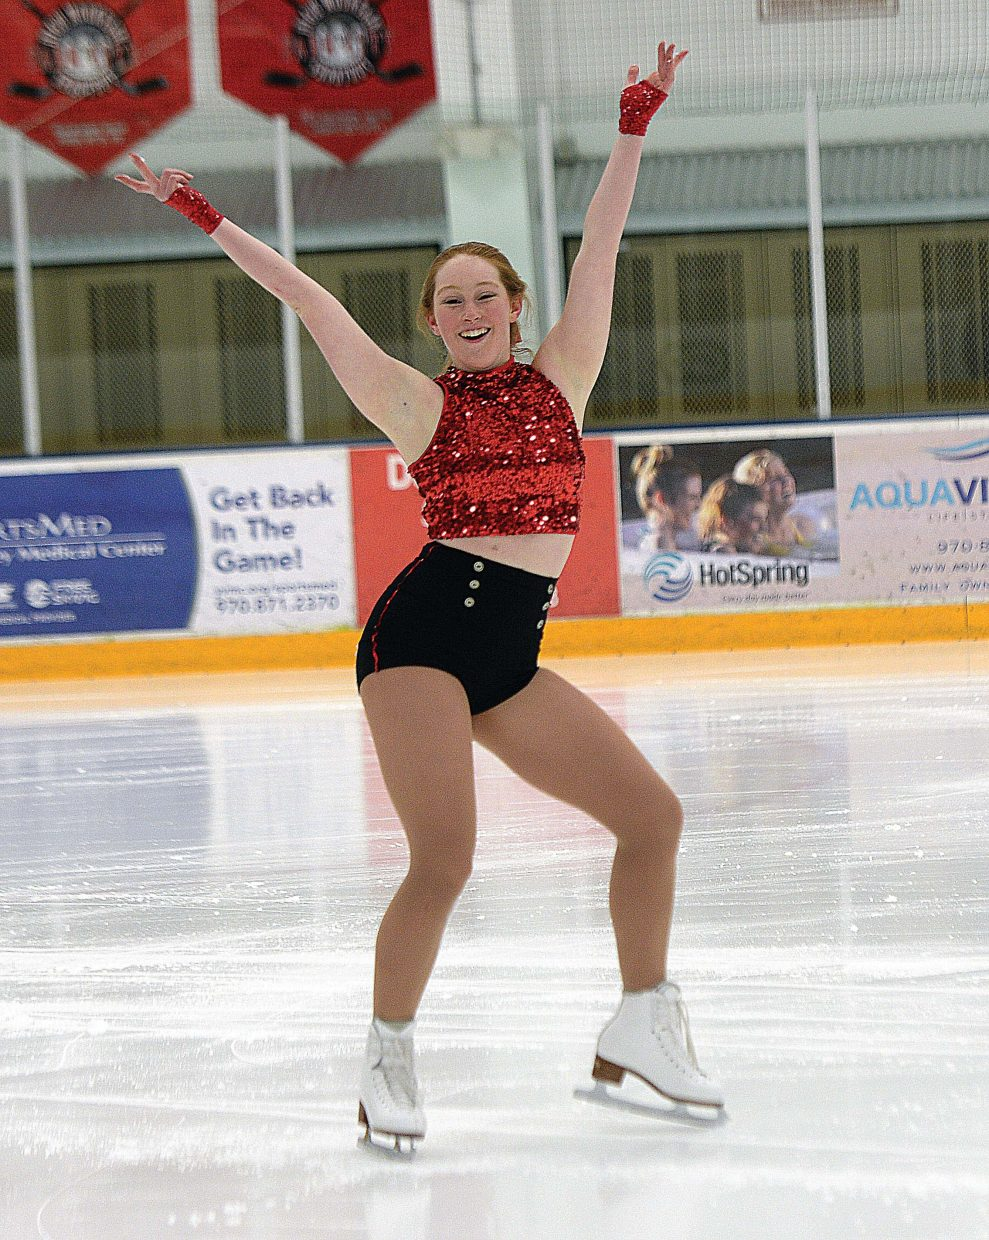 Ice skater Annmarie Hackworthy runs through her routine for the 2016 Holiday Exhibition, which will take place at 6 p.m. Sunday at Howelsen Ice Arena. The show features 18 skaters from the Steamboat Springs Figure Skating Club performing to holiday classics.